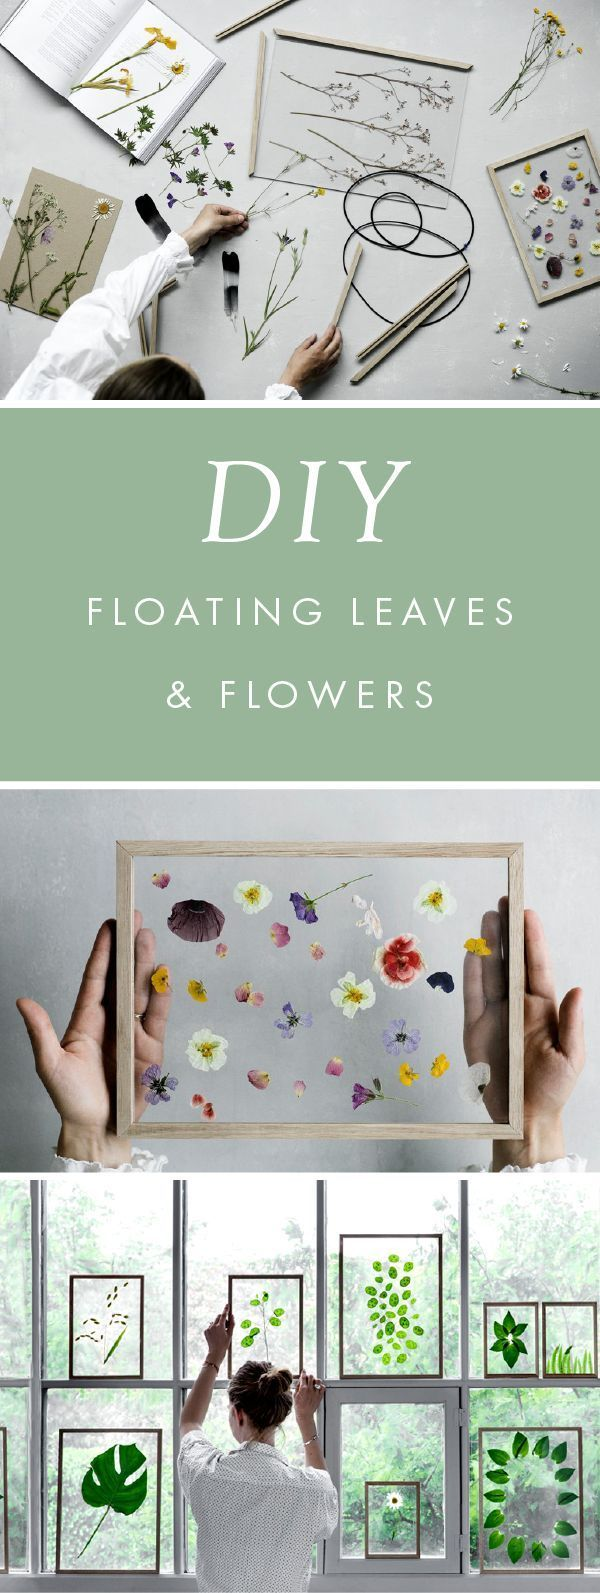 DIY Gift Idea // Minimalist Framed Floating Leaves & Flowers